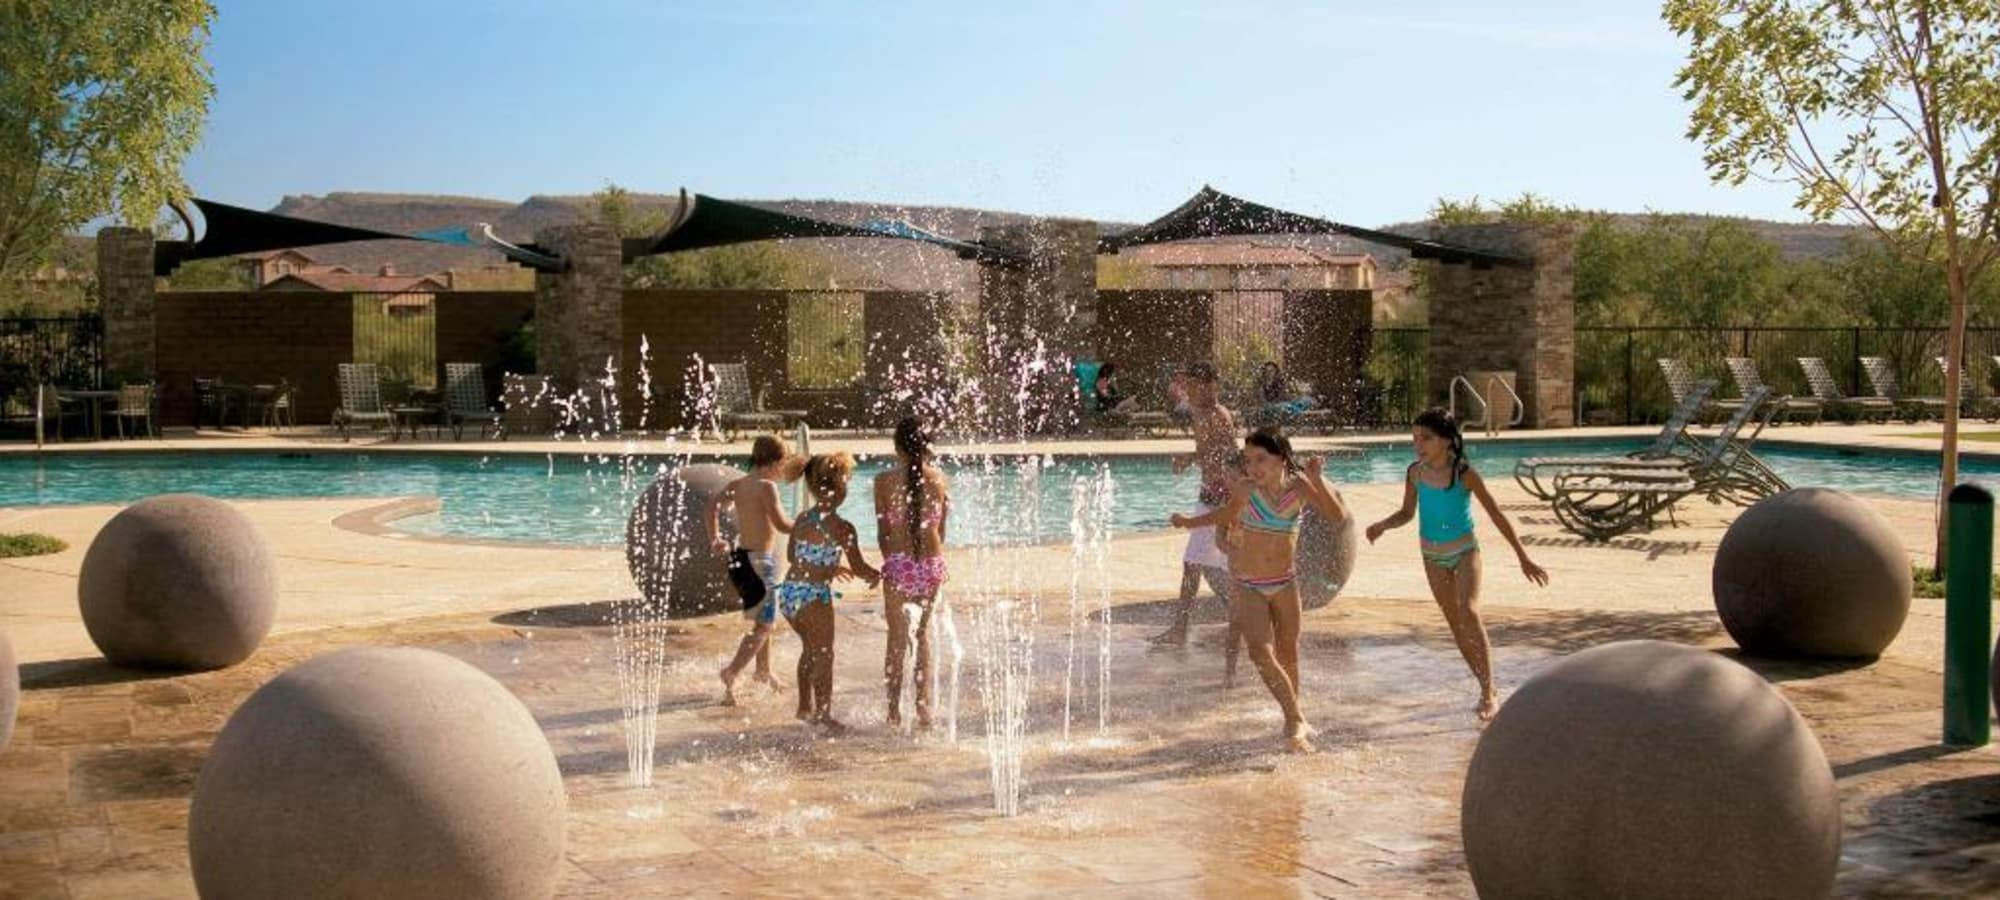 Splash pad at Vistancia in Peoria, Arizona